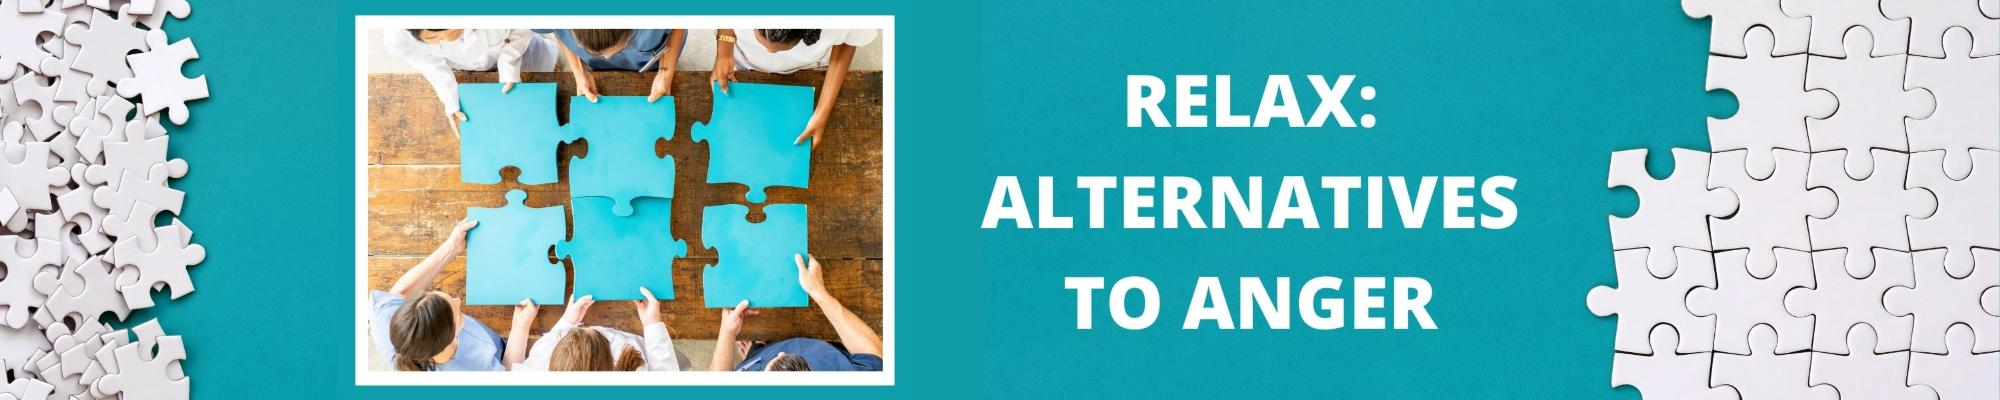 Relax: Alternatives to Anger with puzzle pieces